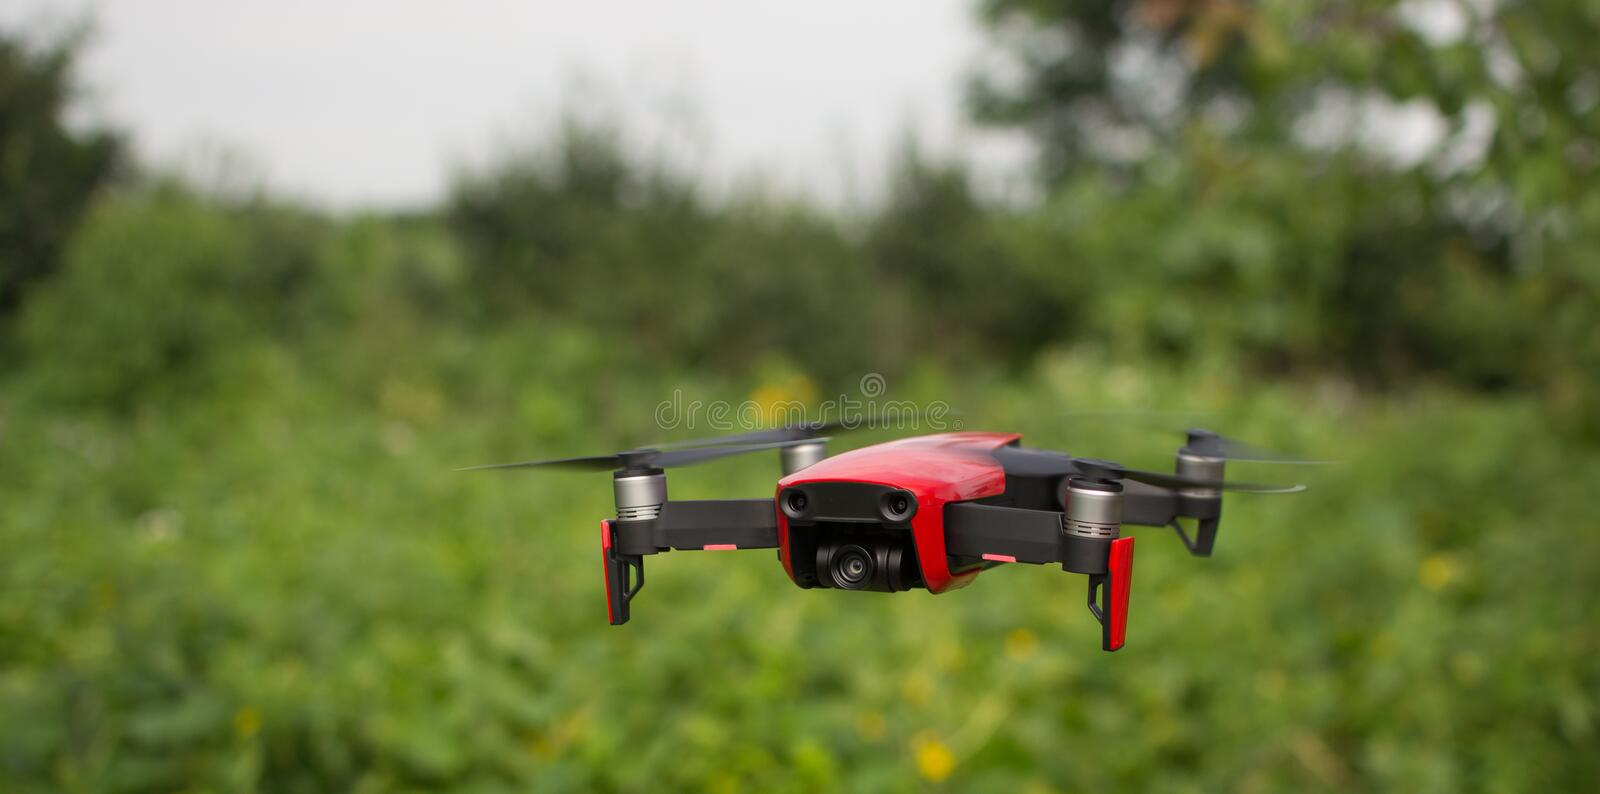 Red drone hovering in the air. Small sized red drone is hovering in the air with green plants in the backgrtound royalty free stock images